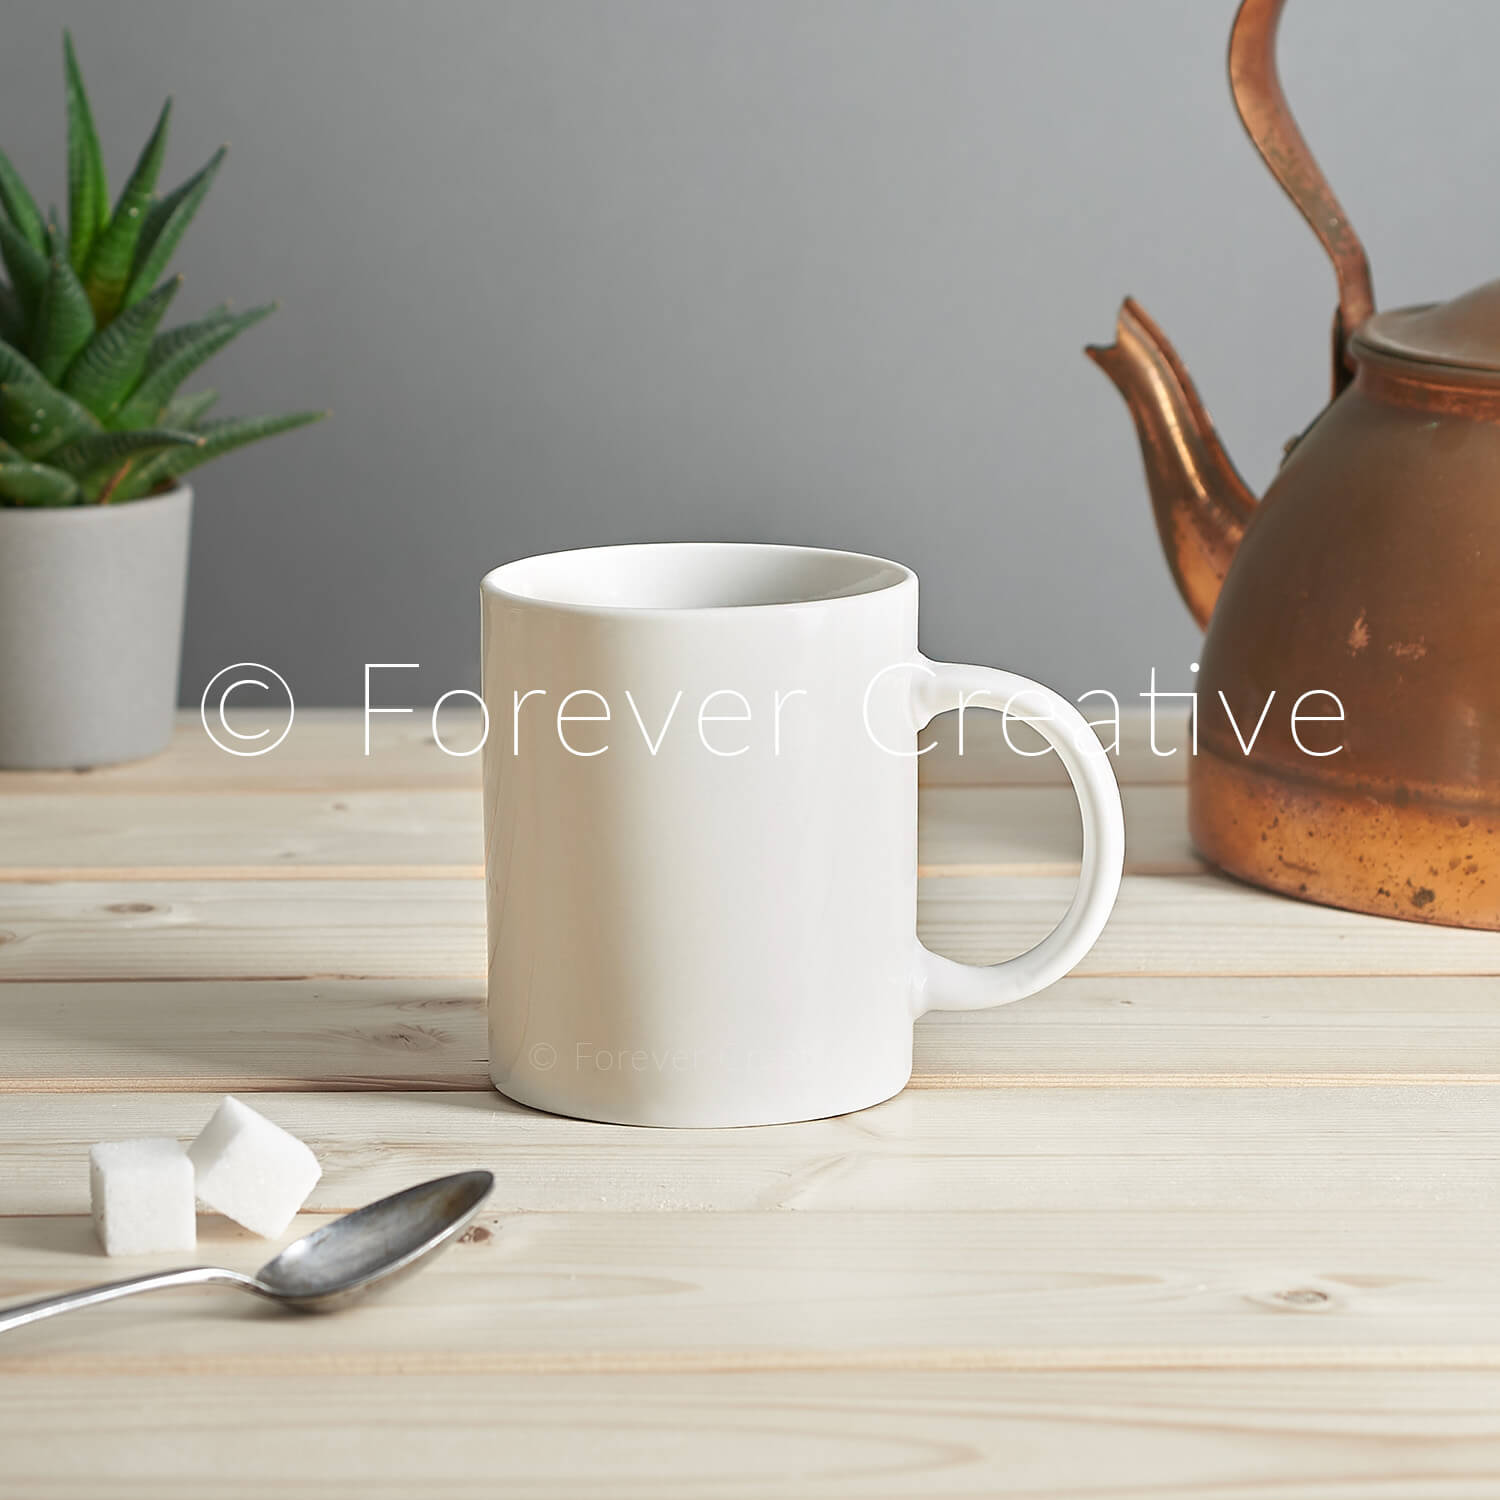 Stock photography of a ceramic white mug in a setting with old kettle, ready for designer to superimpose their artwork into